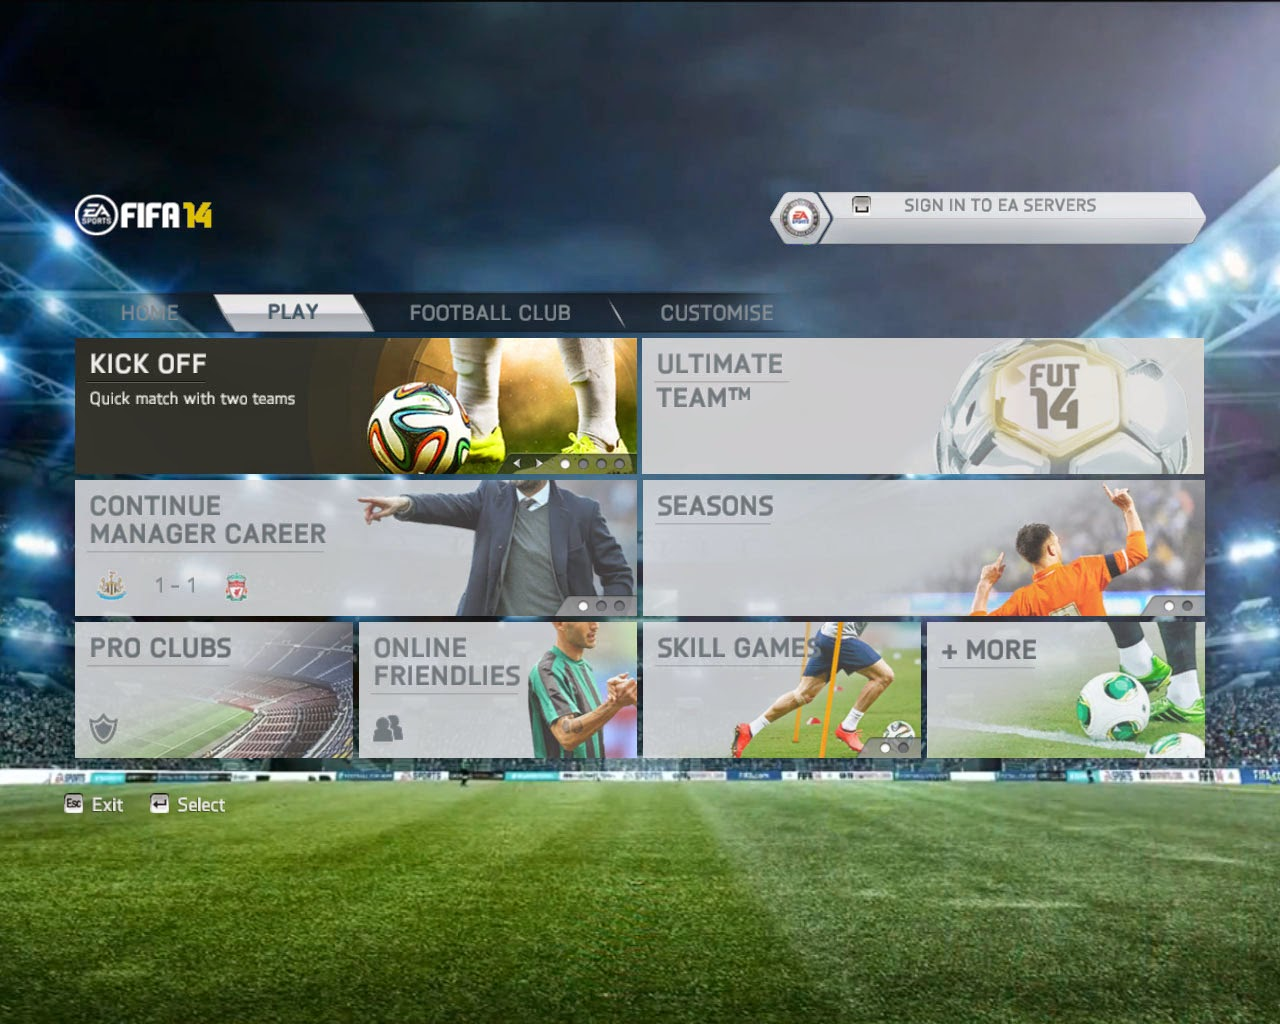 Fifa 14 Skidrow Crack Only Free Download Fasrplayer